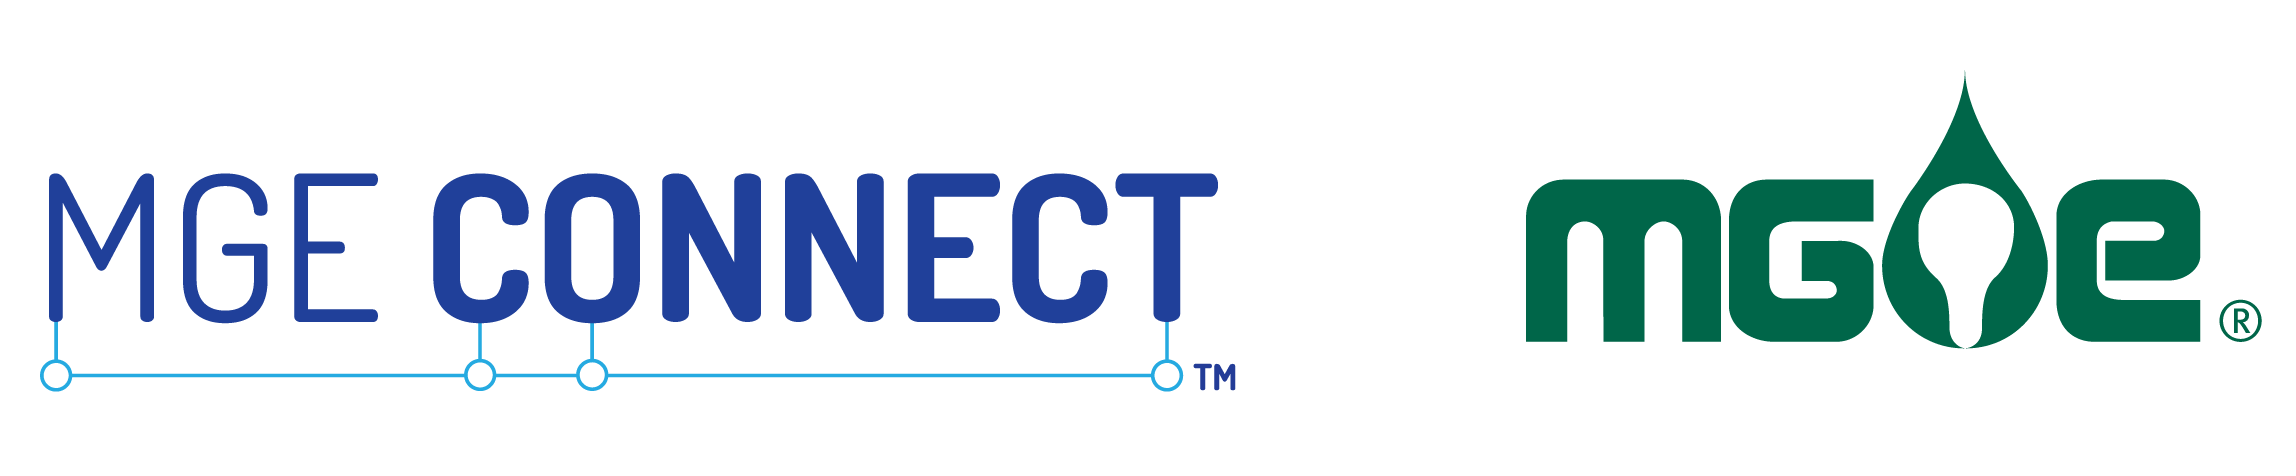 MGE Connect™ logo